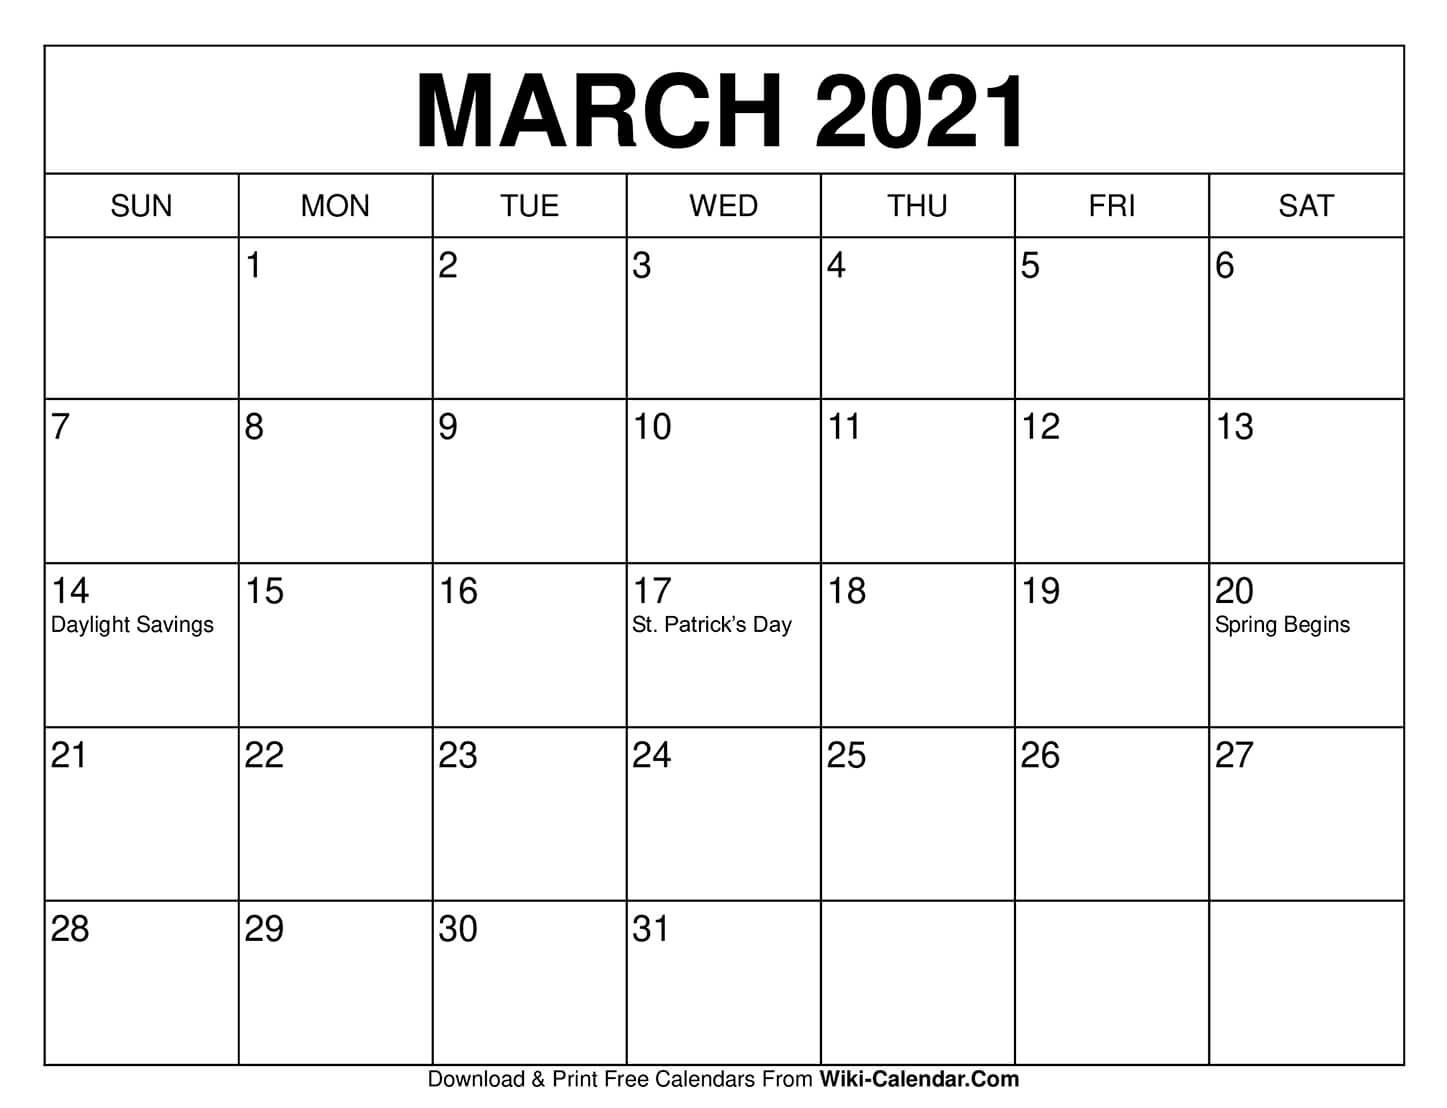 Free Printable March 2021 Calendars  Free Monthly Calendar Printable March 2021